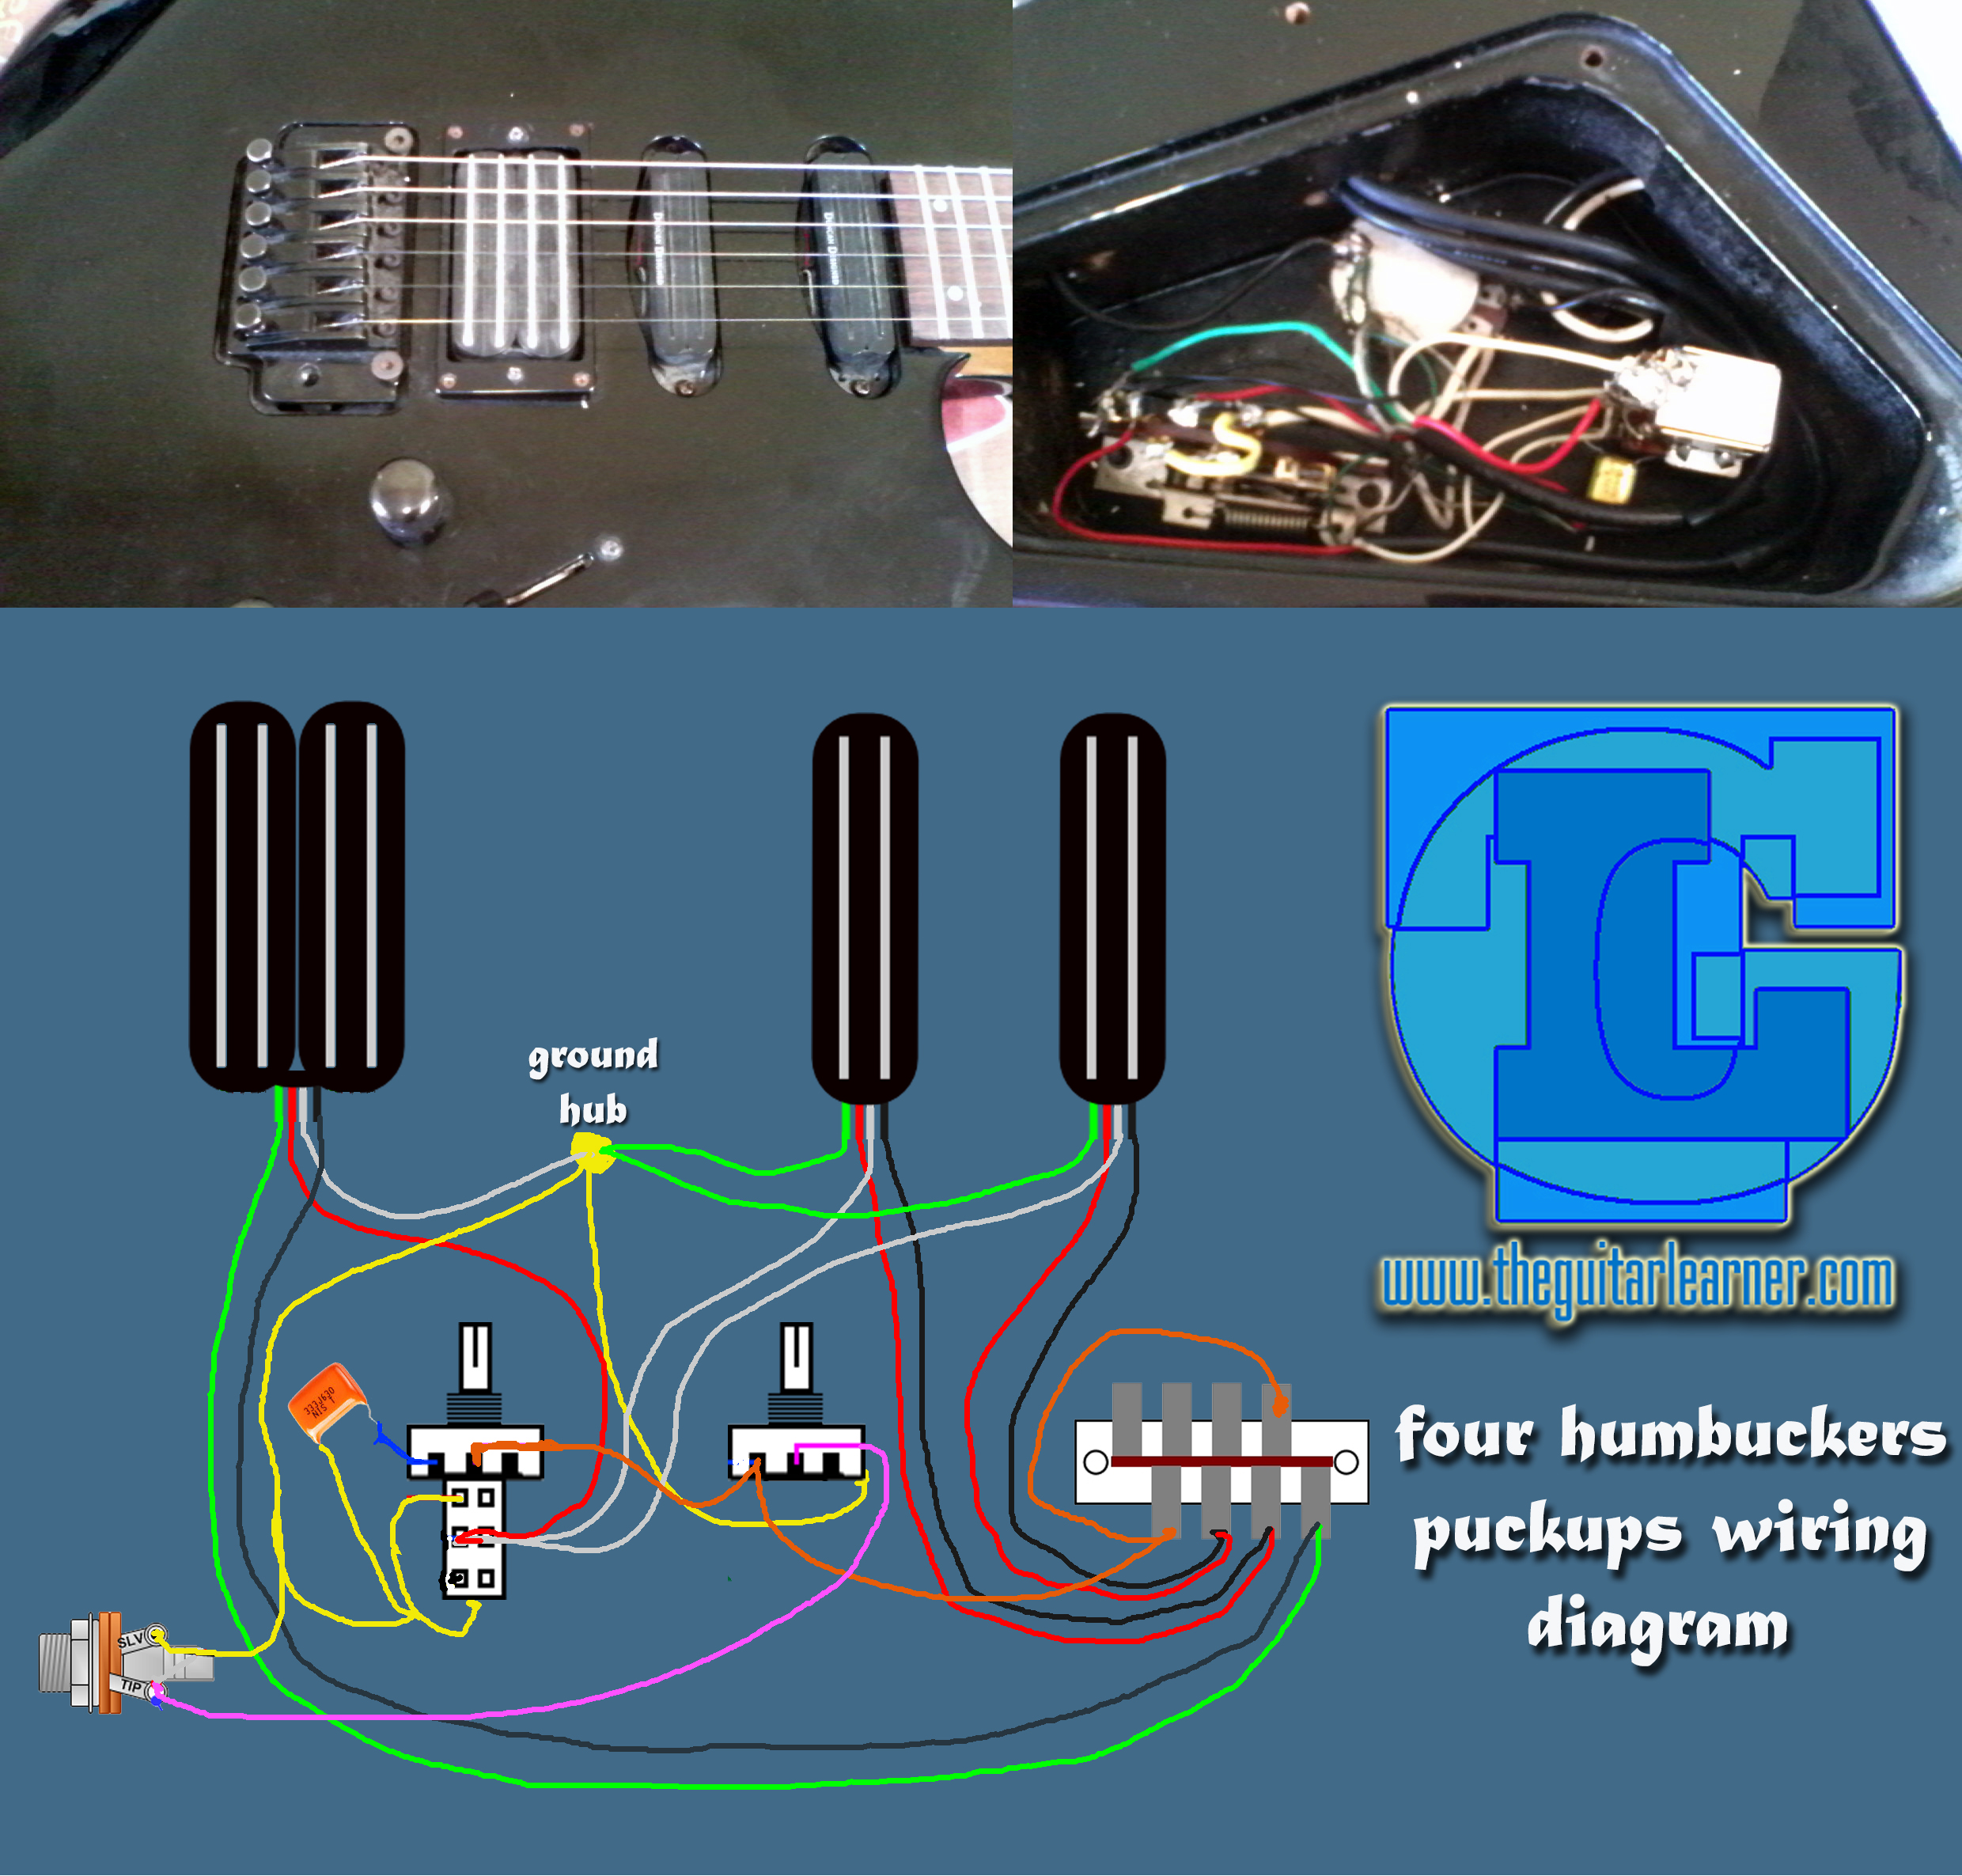 four humbuckers pickup wiring diagram hotrails and quadrail four humbuckers pickup wiring diagram hotrails and quadrail Seymour Duncan Strat Wiring Diagram at gsmx.co